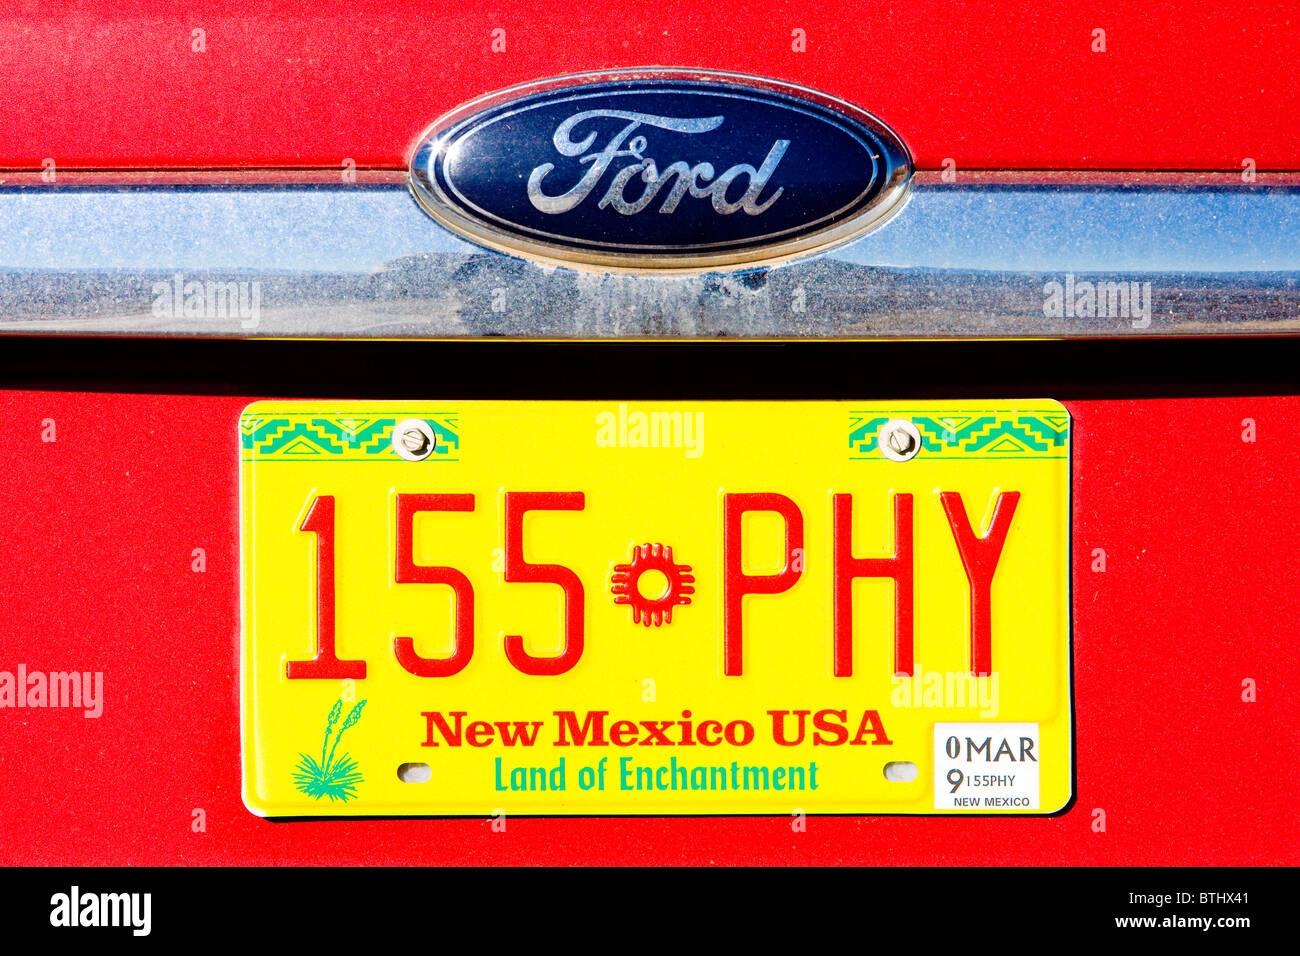 registration number, New Mexico, USA - Stock Image